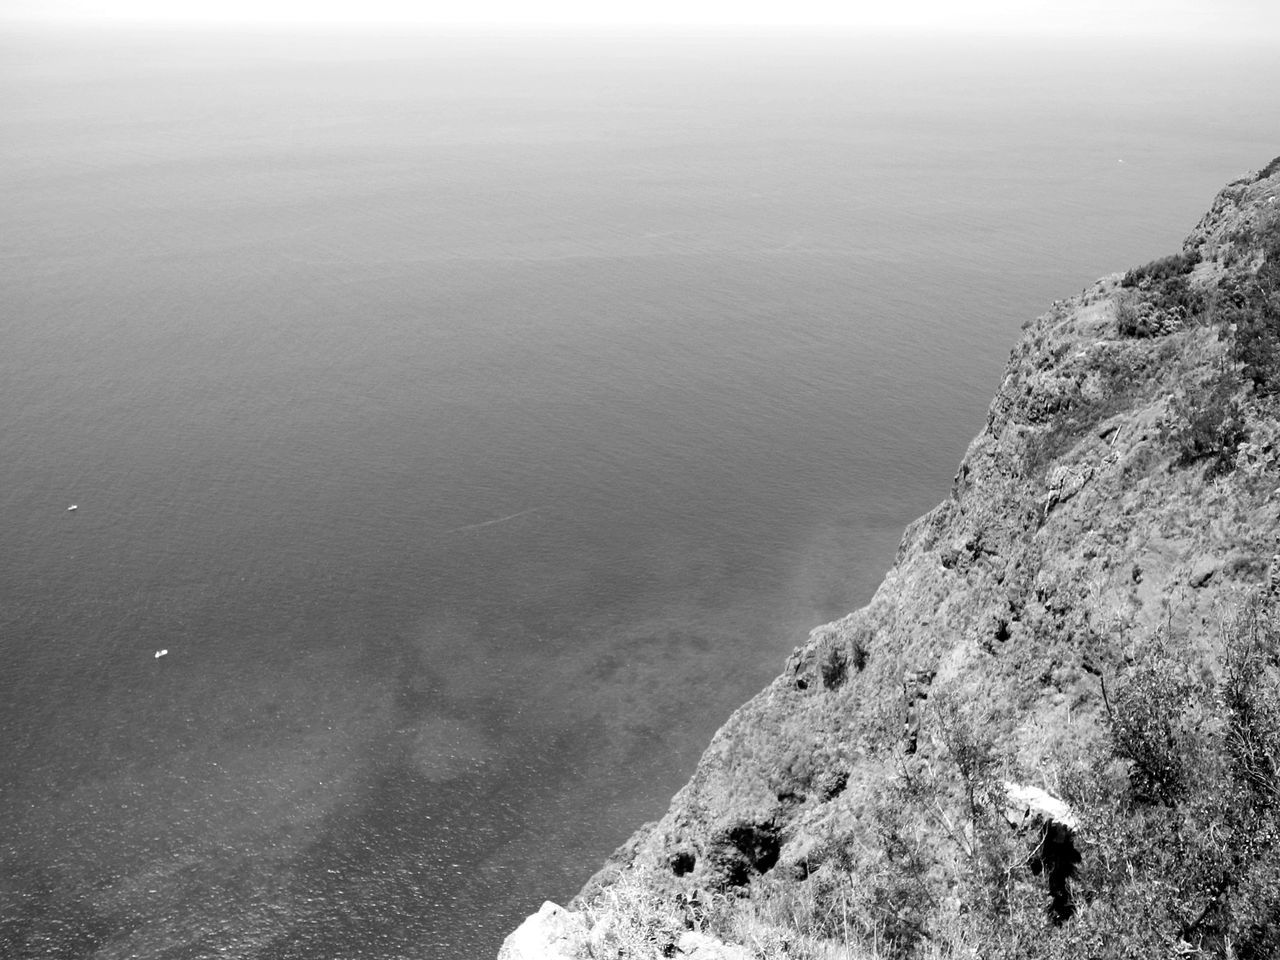 Beauty In Nature Cliff Day Nature No People Outdoors Rock - Object Scenics Sea Sky Tranquility Flying High Cliffs Sea And Sky View Aerial View Travel Destinations Rock And Sea Wide View Mountain Summer Rocks Rocks And Water Rocks In Water Black And White